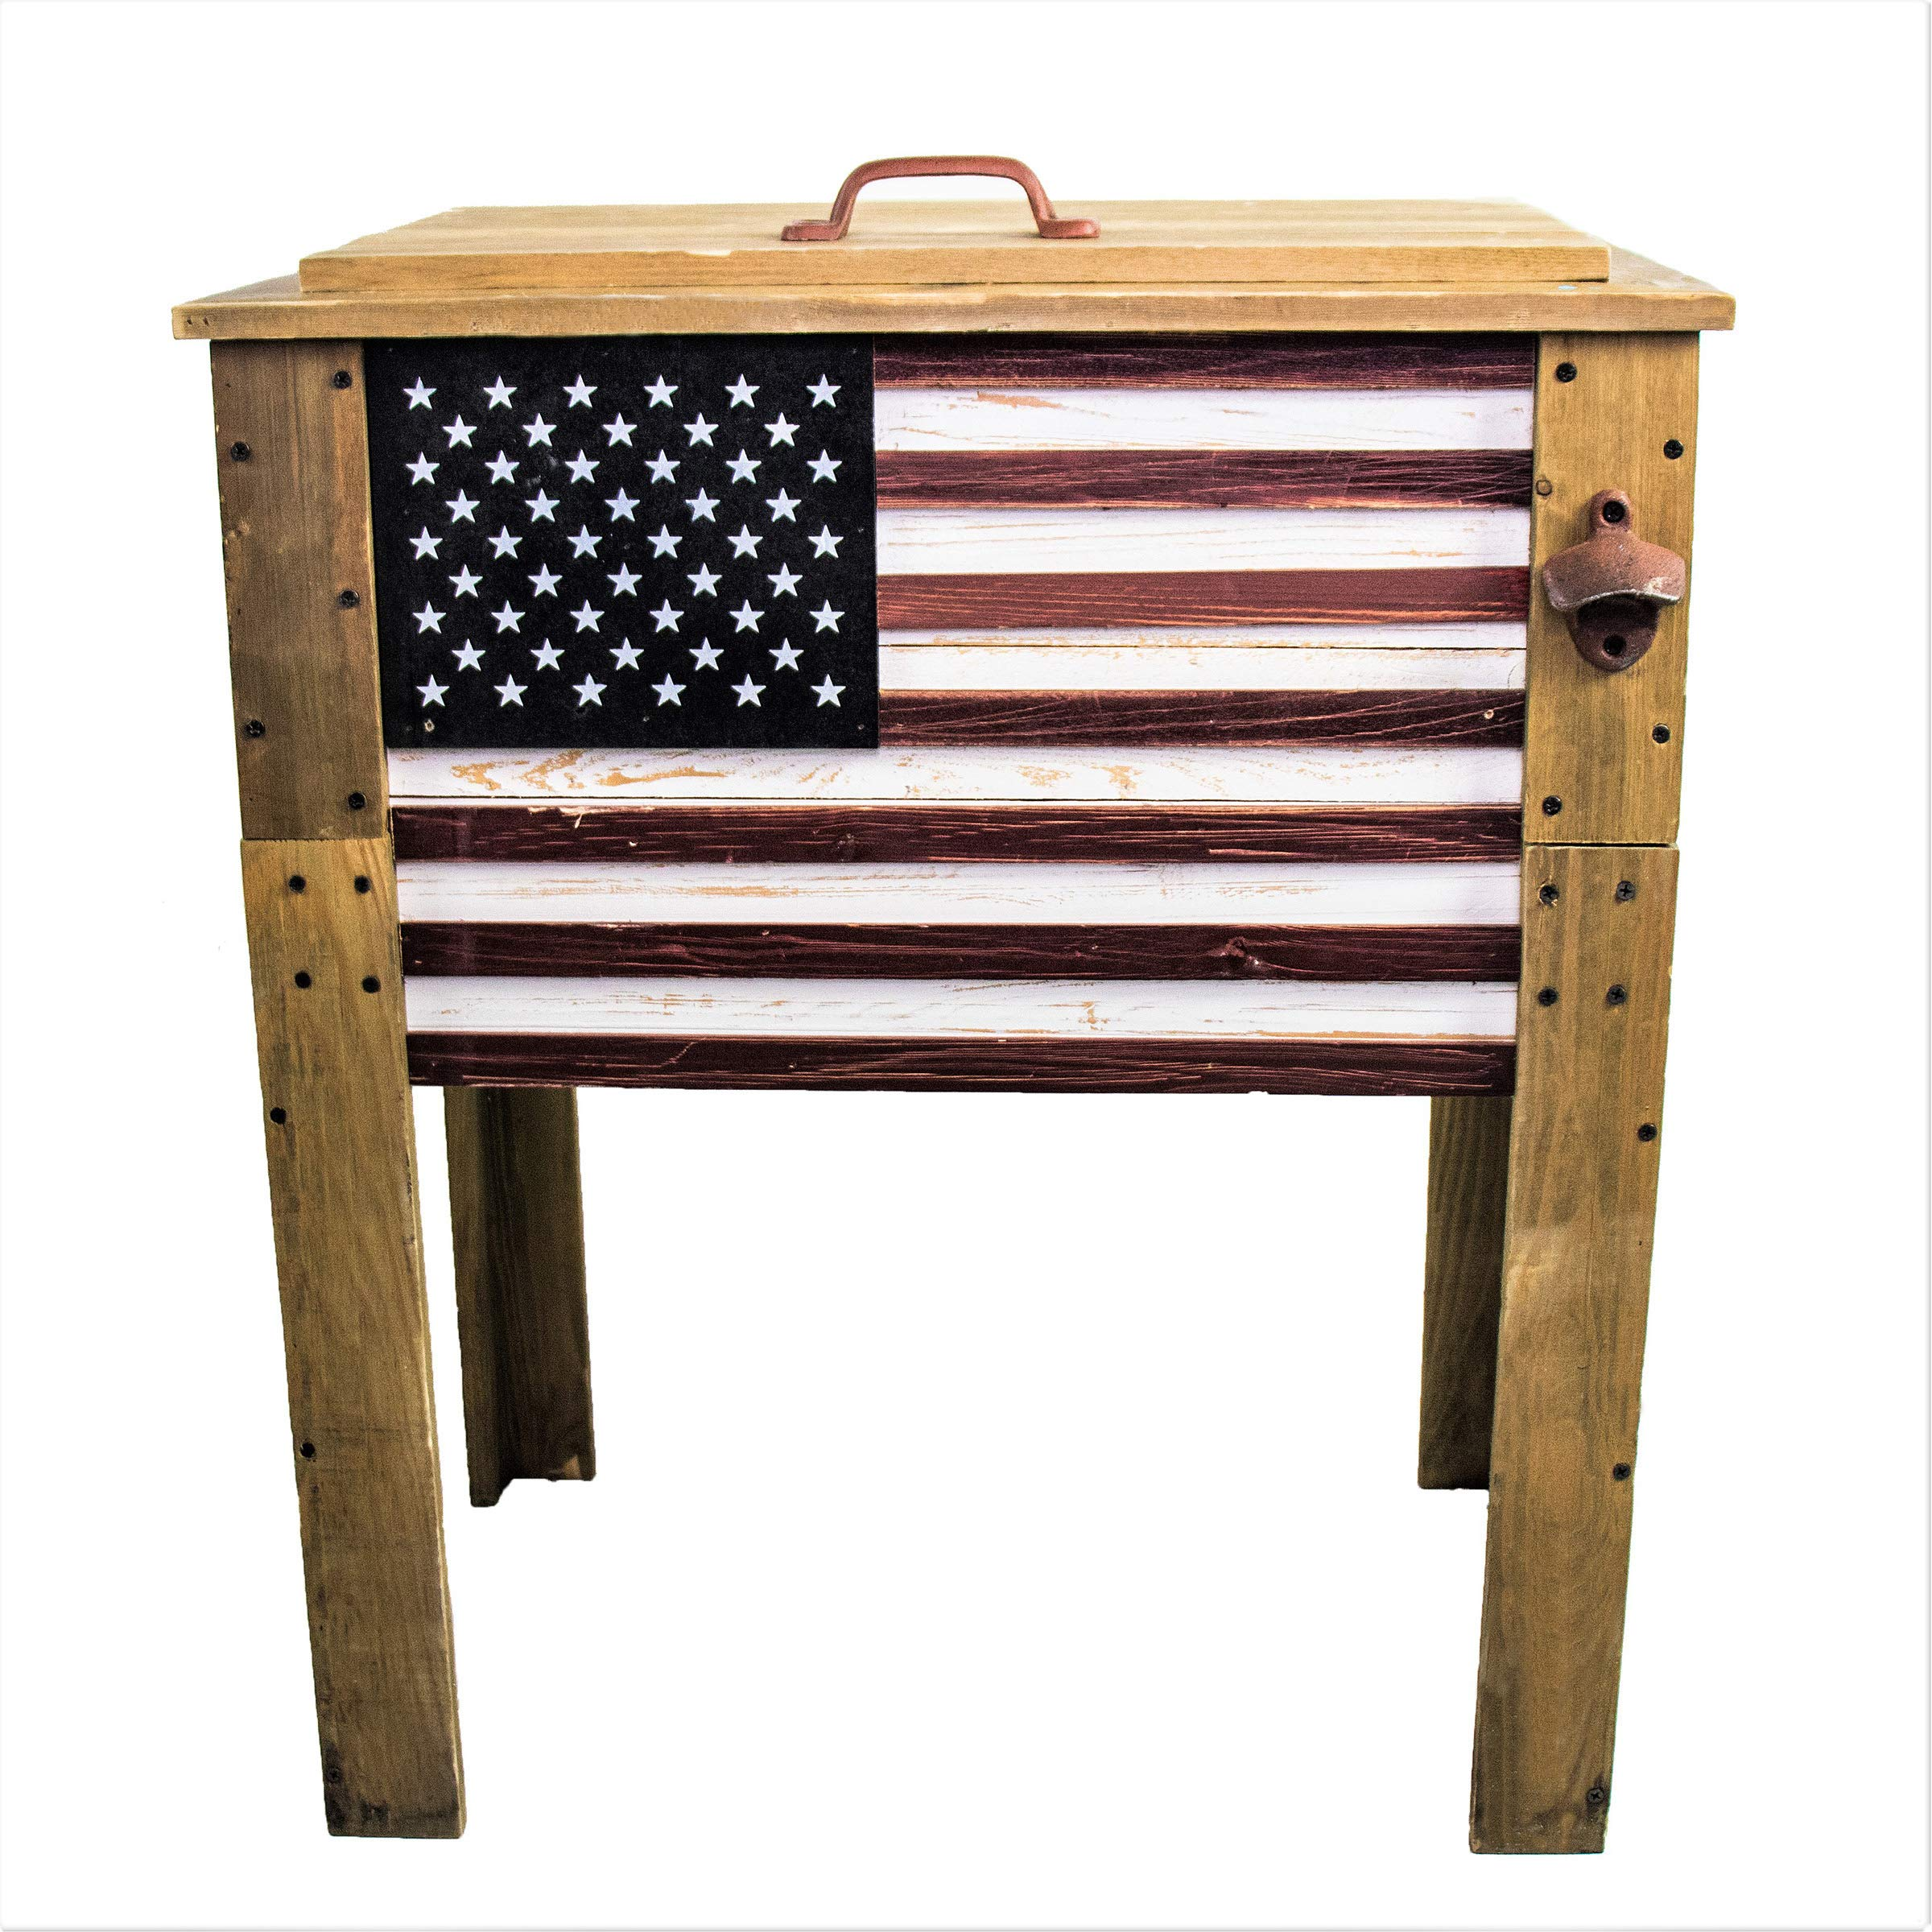 BACKYARD EXPRESSIONS PATIO · HOME · GARDEN 909939 Wooden American Flag Patio Beverage Cooler for Outdoors, Decorative by BACKYARD EXPRESSIONS PATIO · HOME · GARDEN